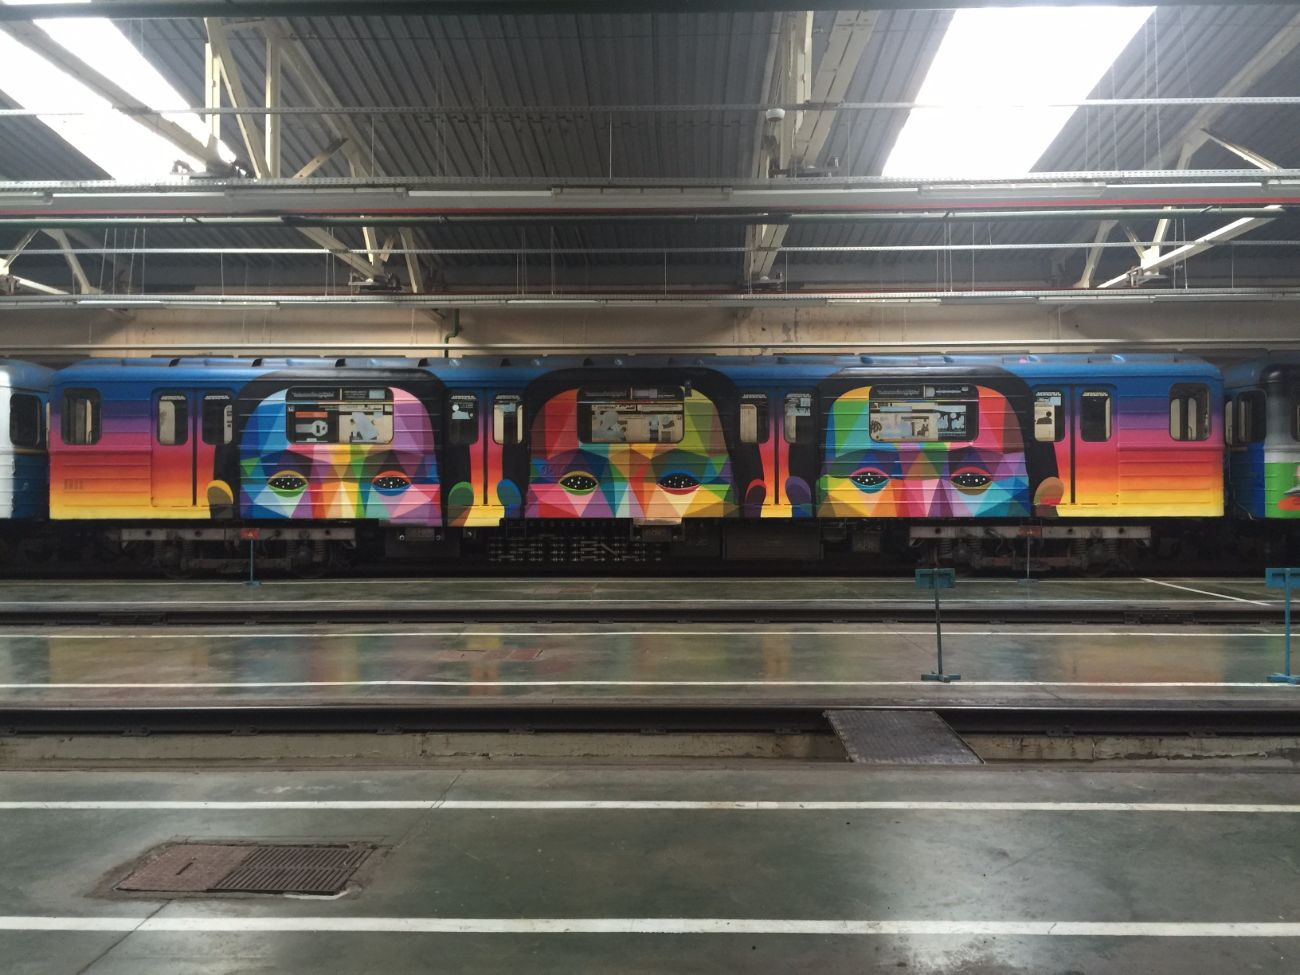 okuda-san-miguels-5-car-train-in-kiev-ukraine-thevandallist-8